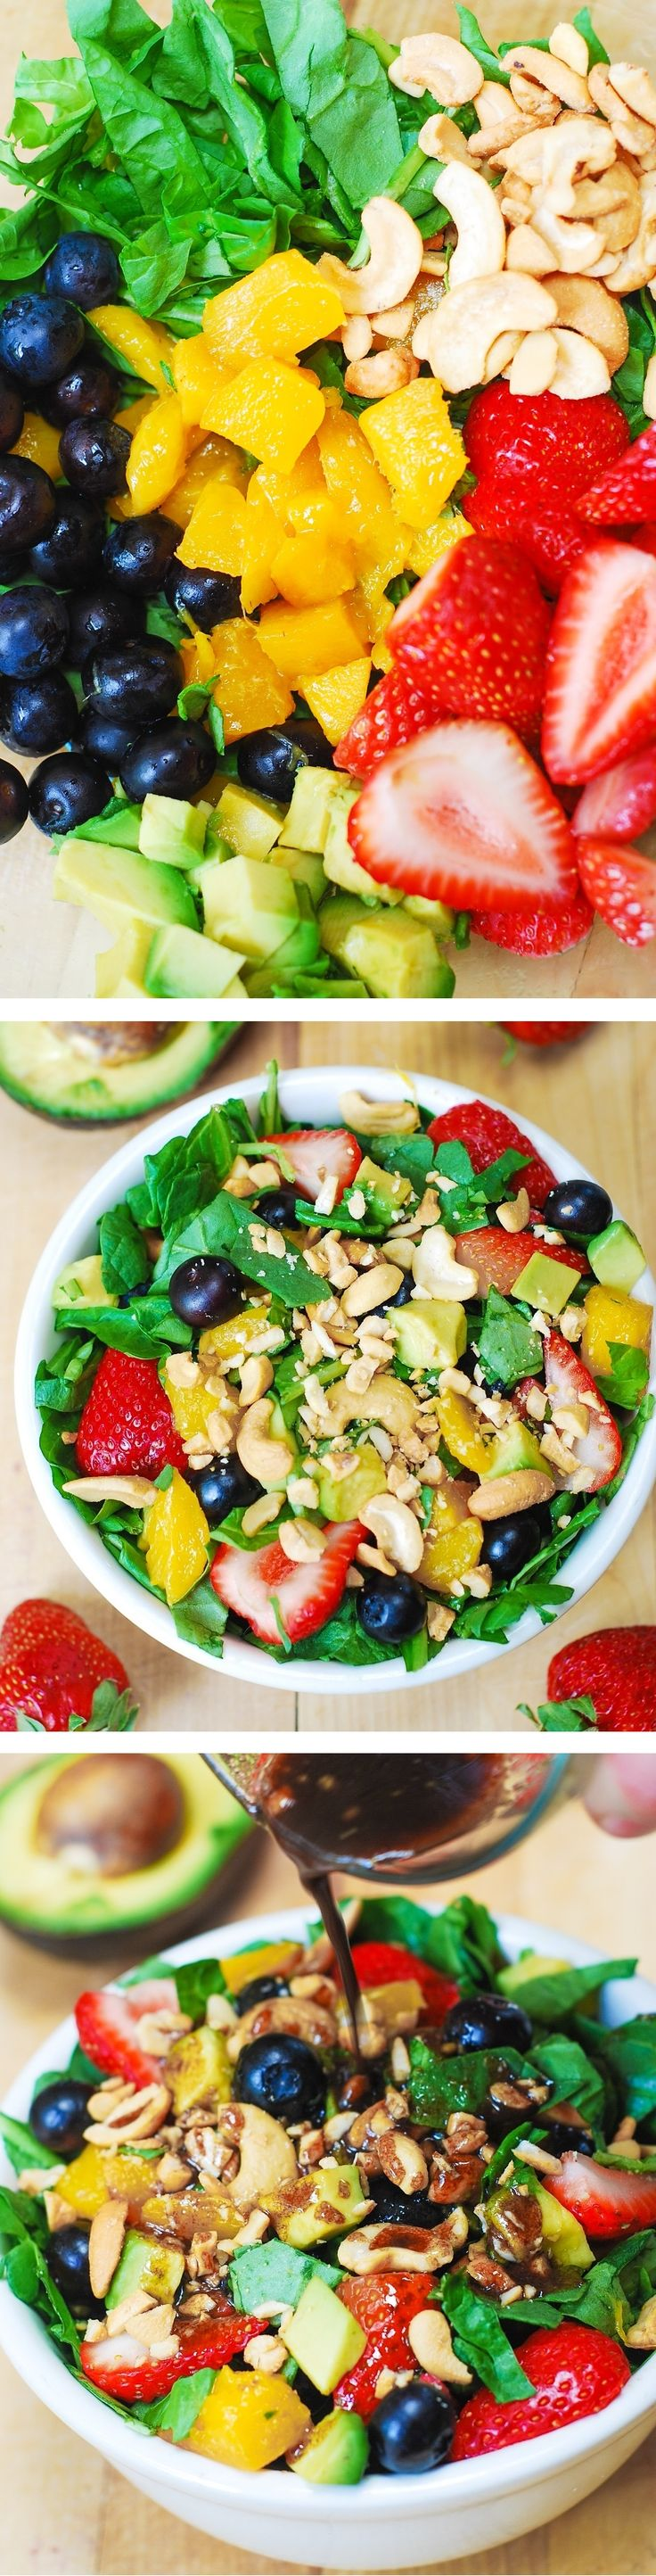 Strawberry Spinach Salad, with Blueberries, Mango, Avocado, and Cashew nuts + homemade Balsamic Vinaigrette salad dressing.